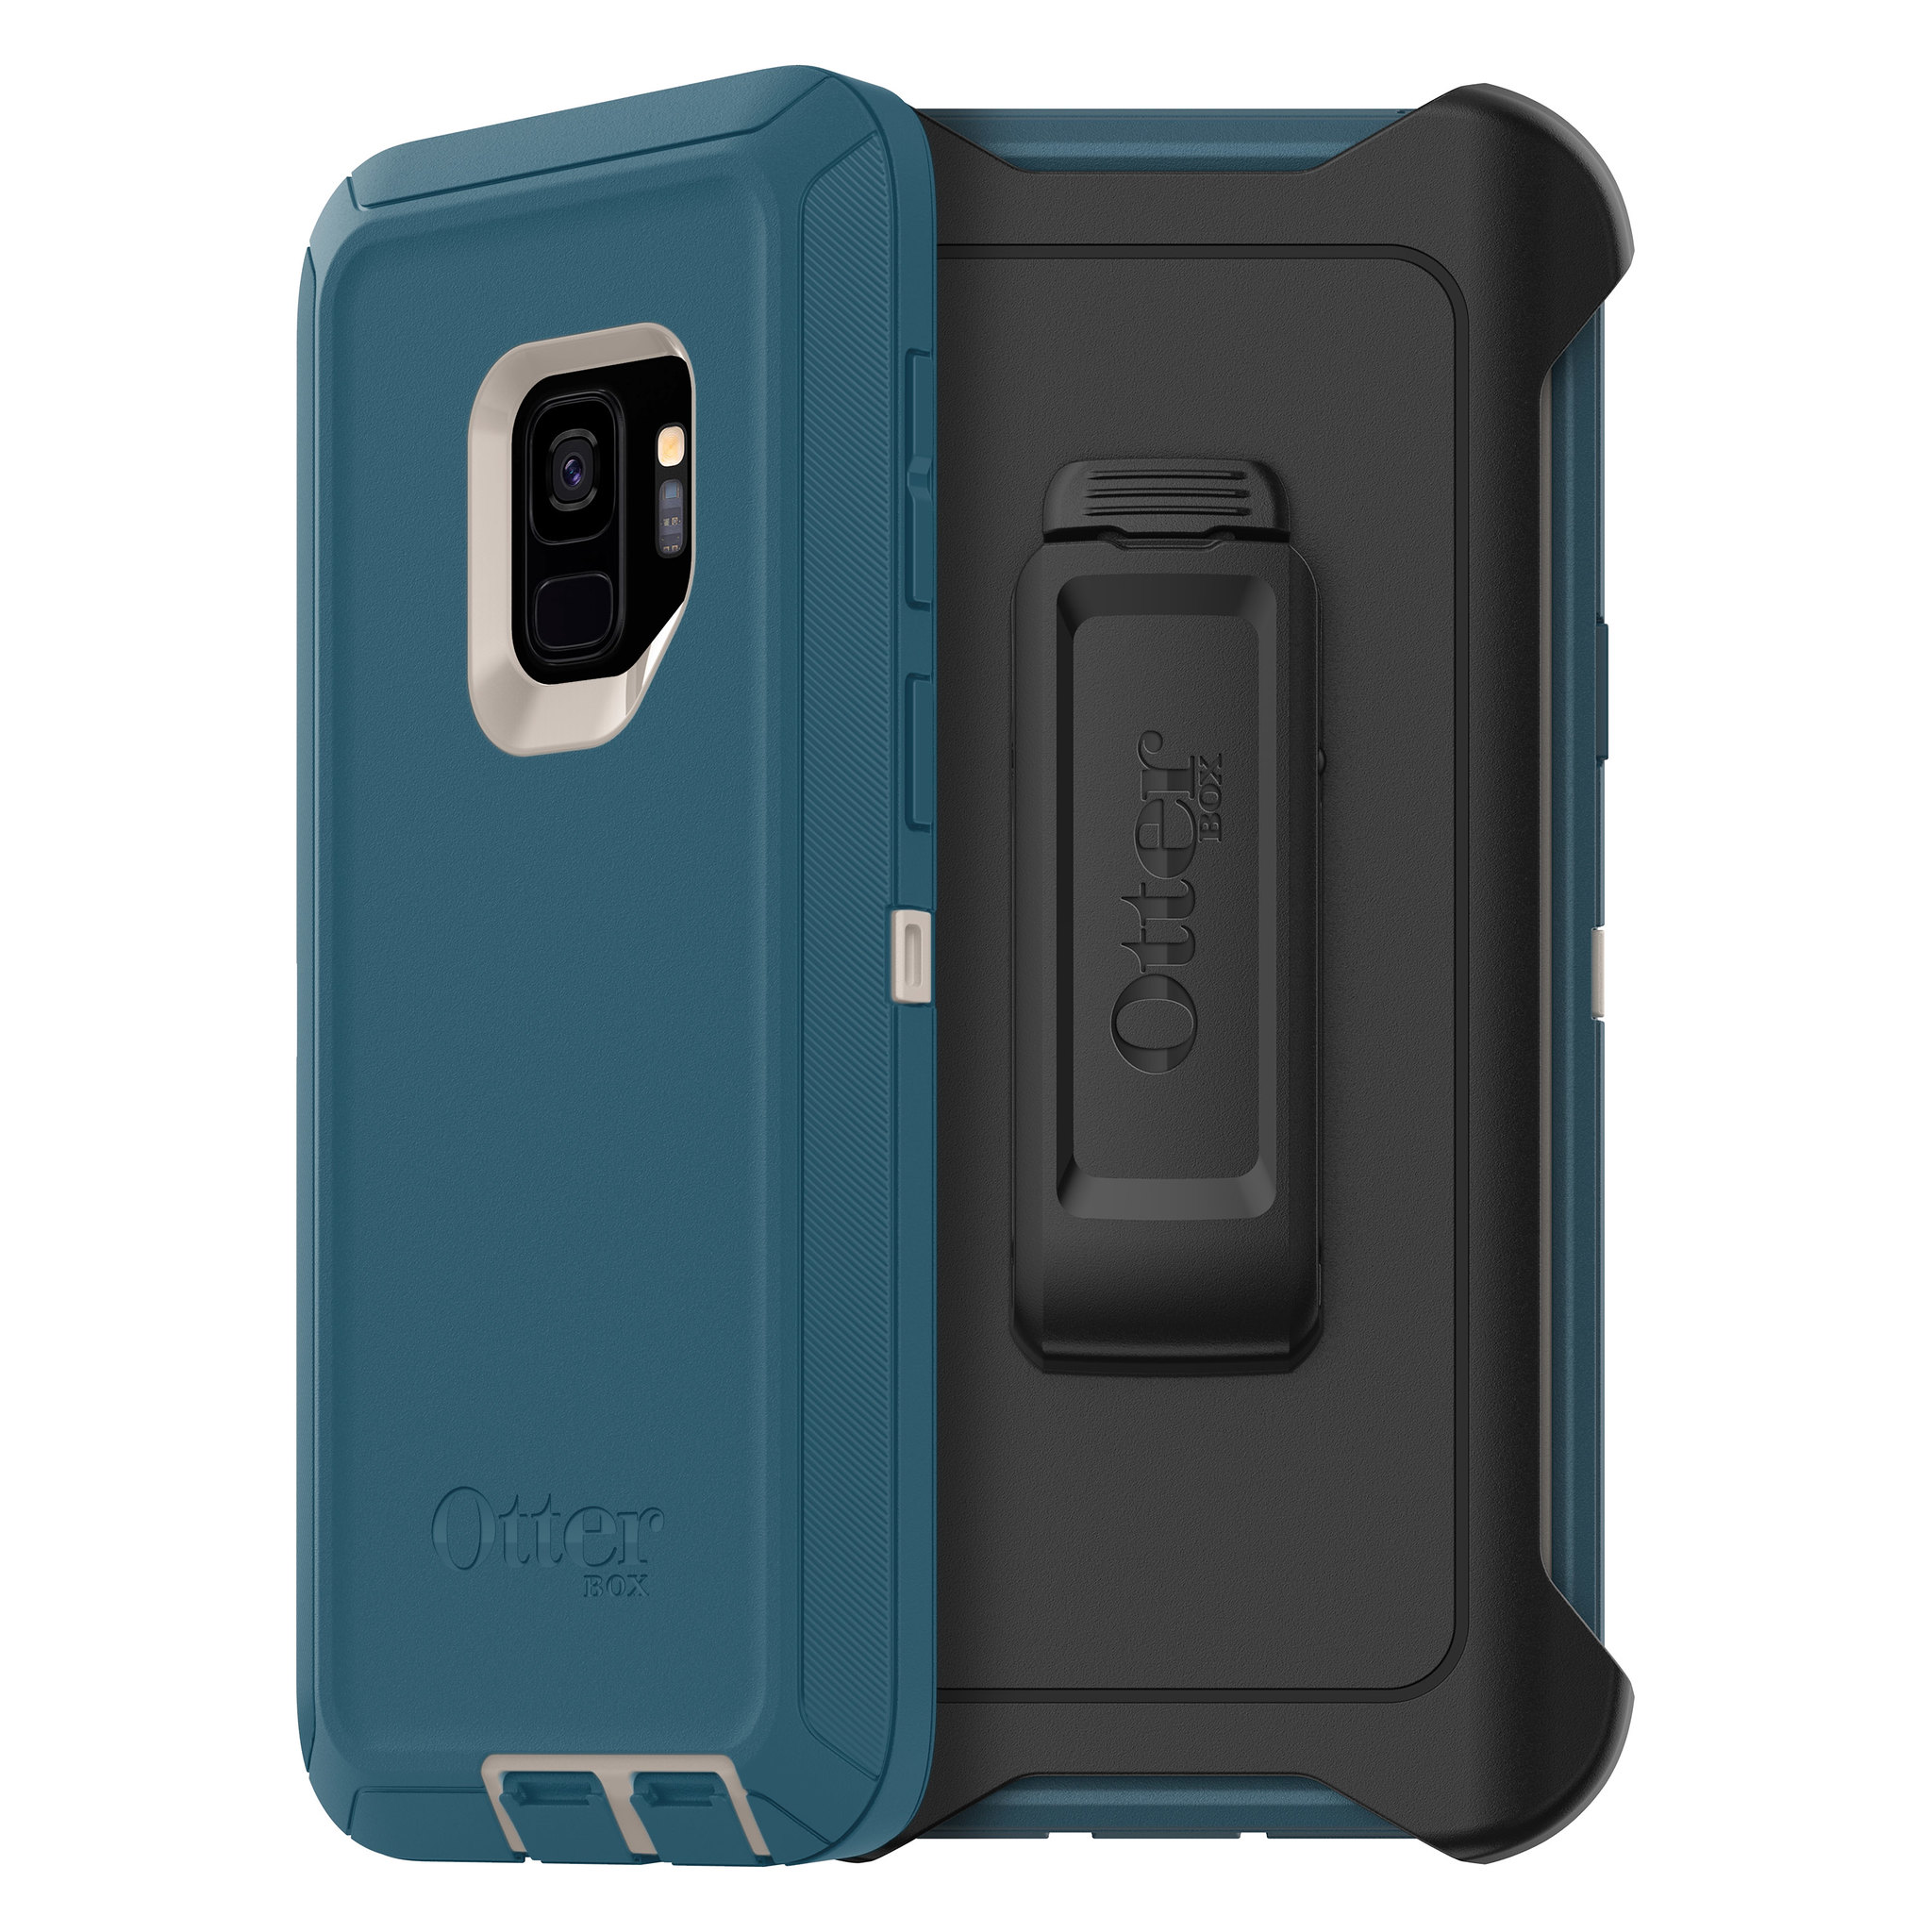 Otterbox S9 Defender Big Sur